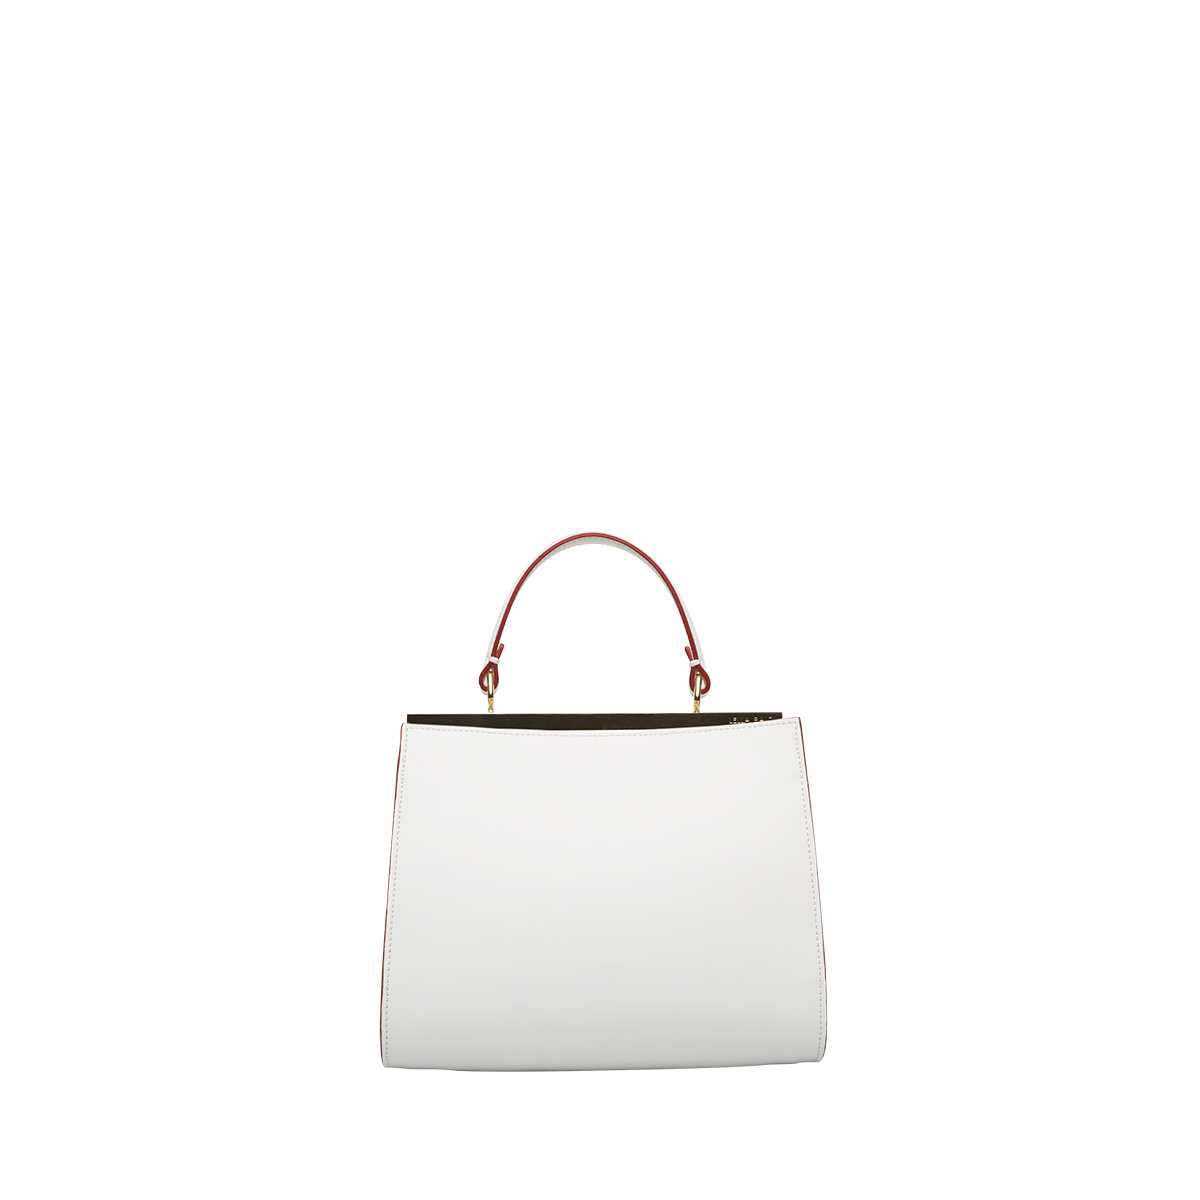 Wavy Bag Shoulder, White-Brick